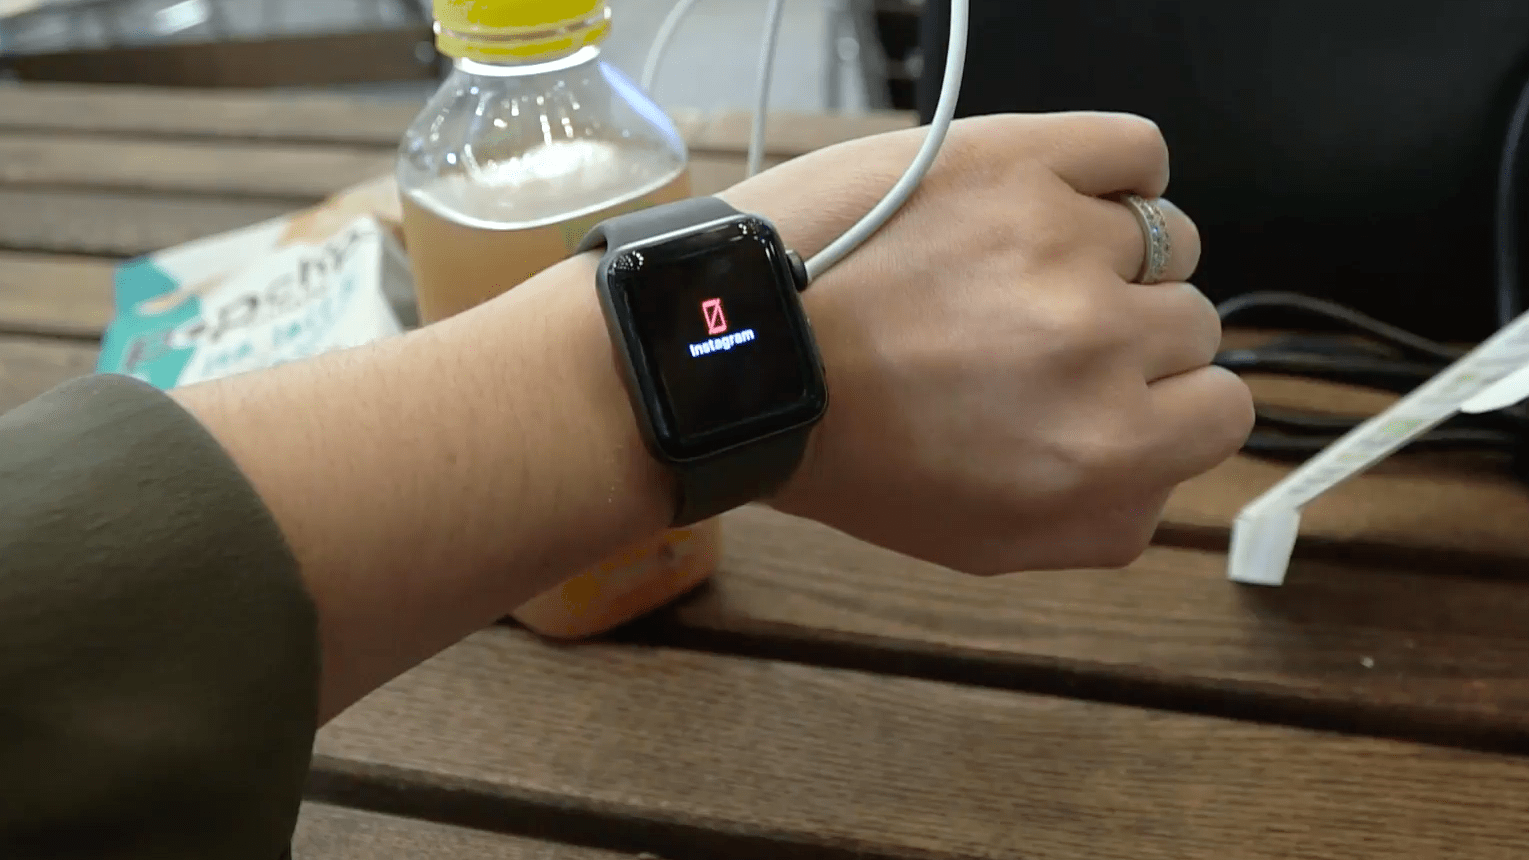 Apple Watch S3 geen Instagram 16x9